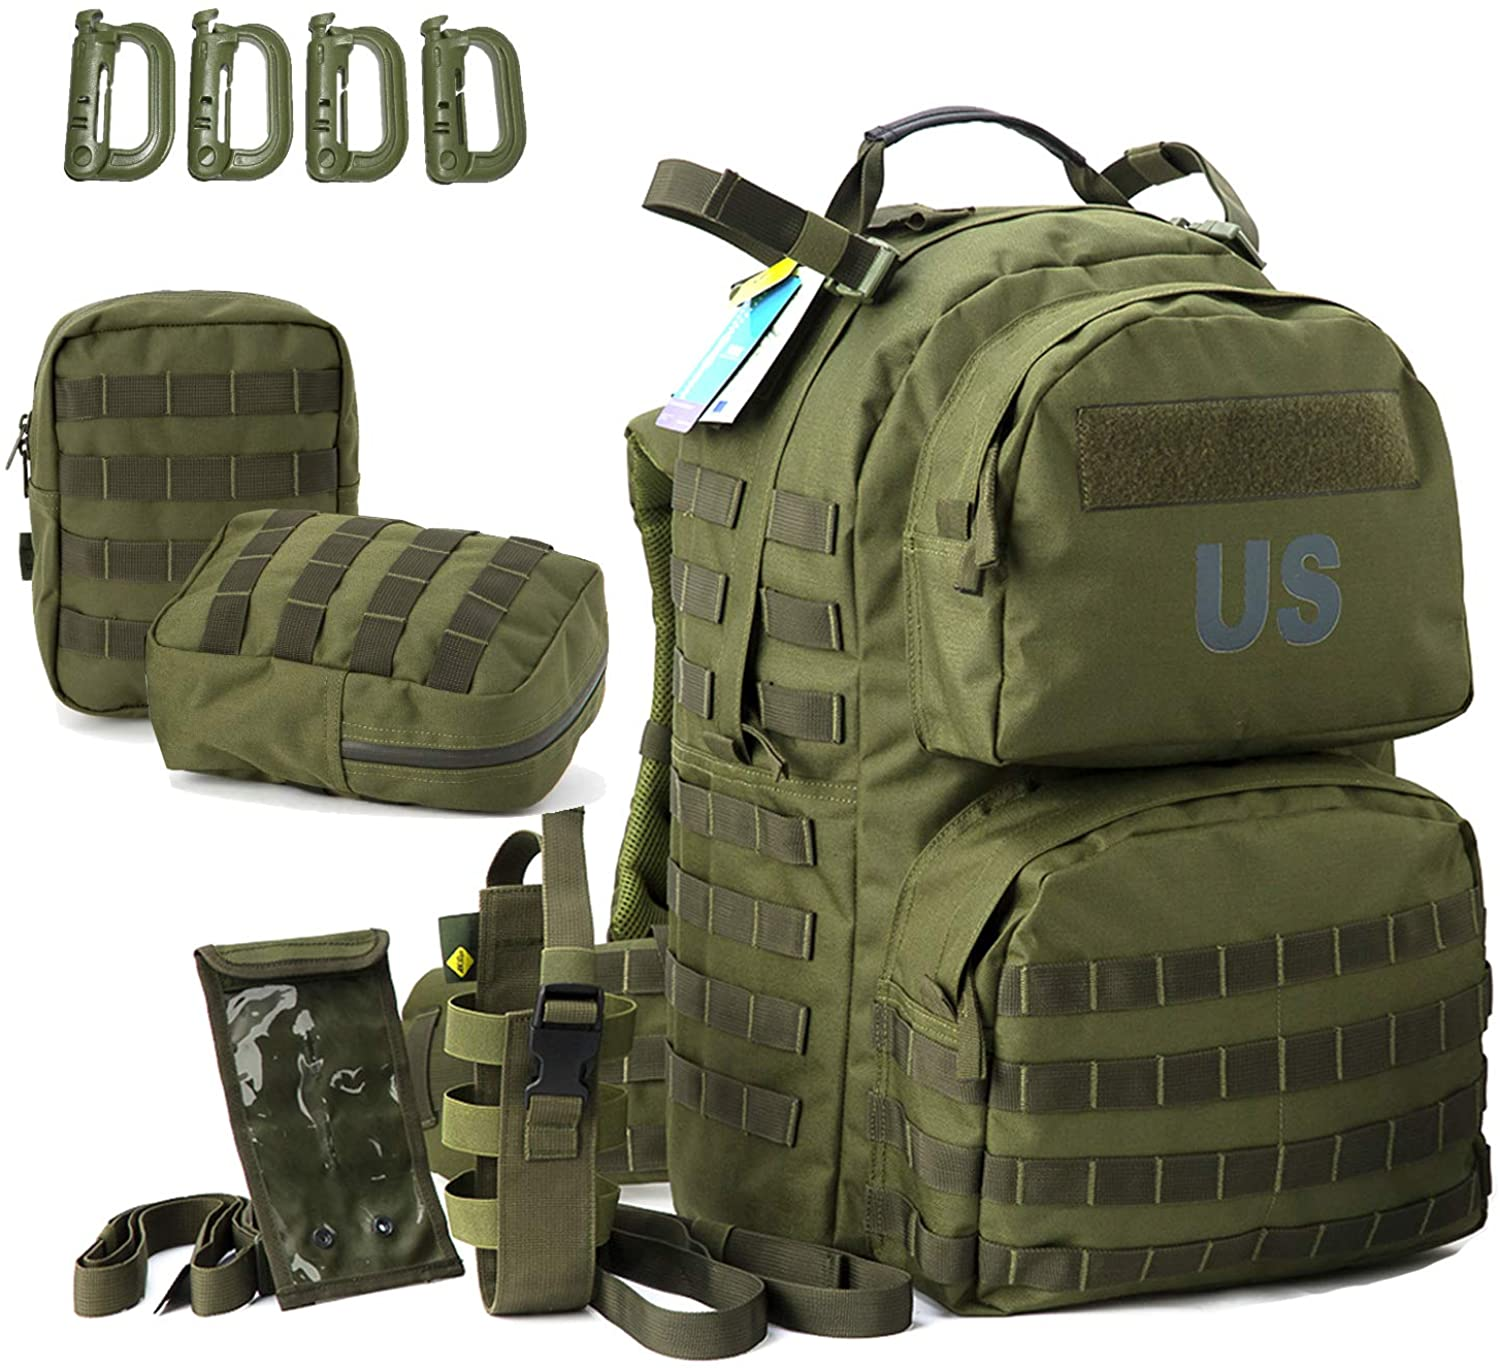 MT Military Surplus MOLLE Medium Rucksack with Pouch Army Tactical Backpack